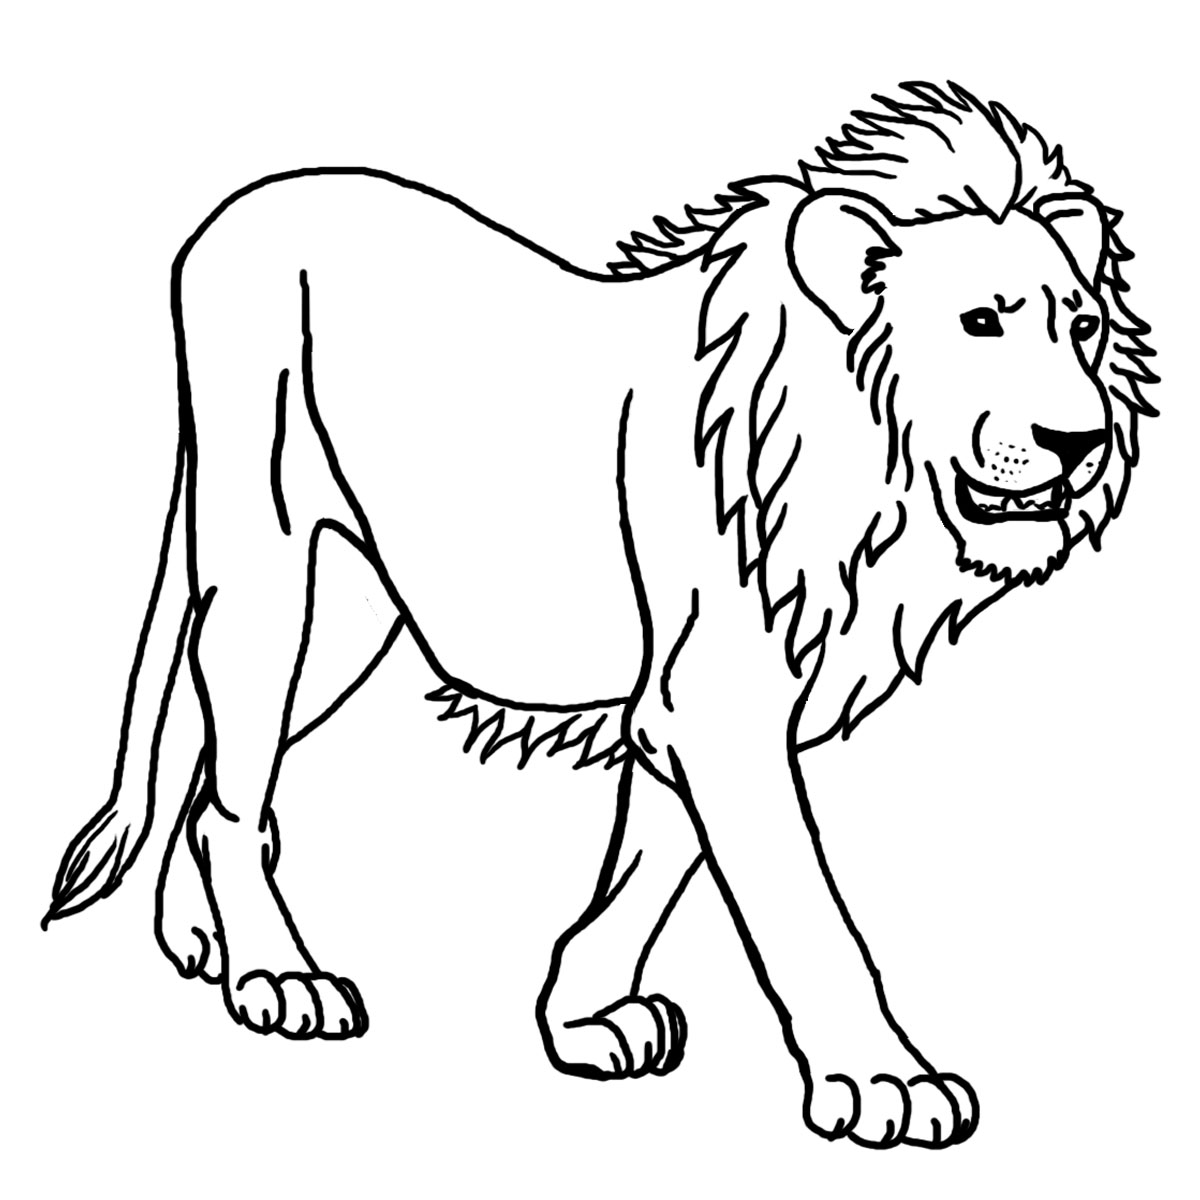 coloring lion pages realistic coloring cat clipart black and white alcateri lion coloring pages